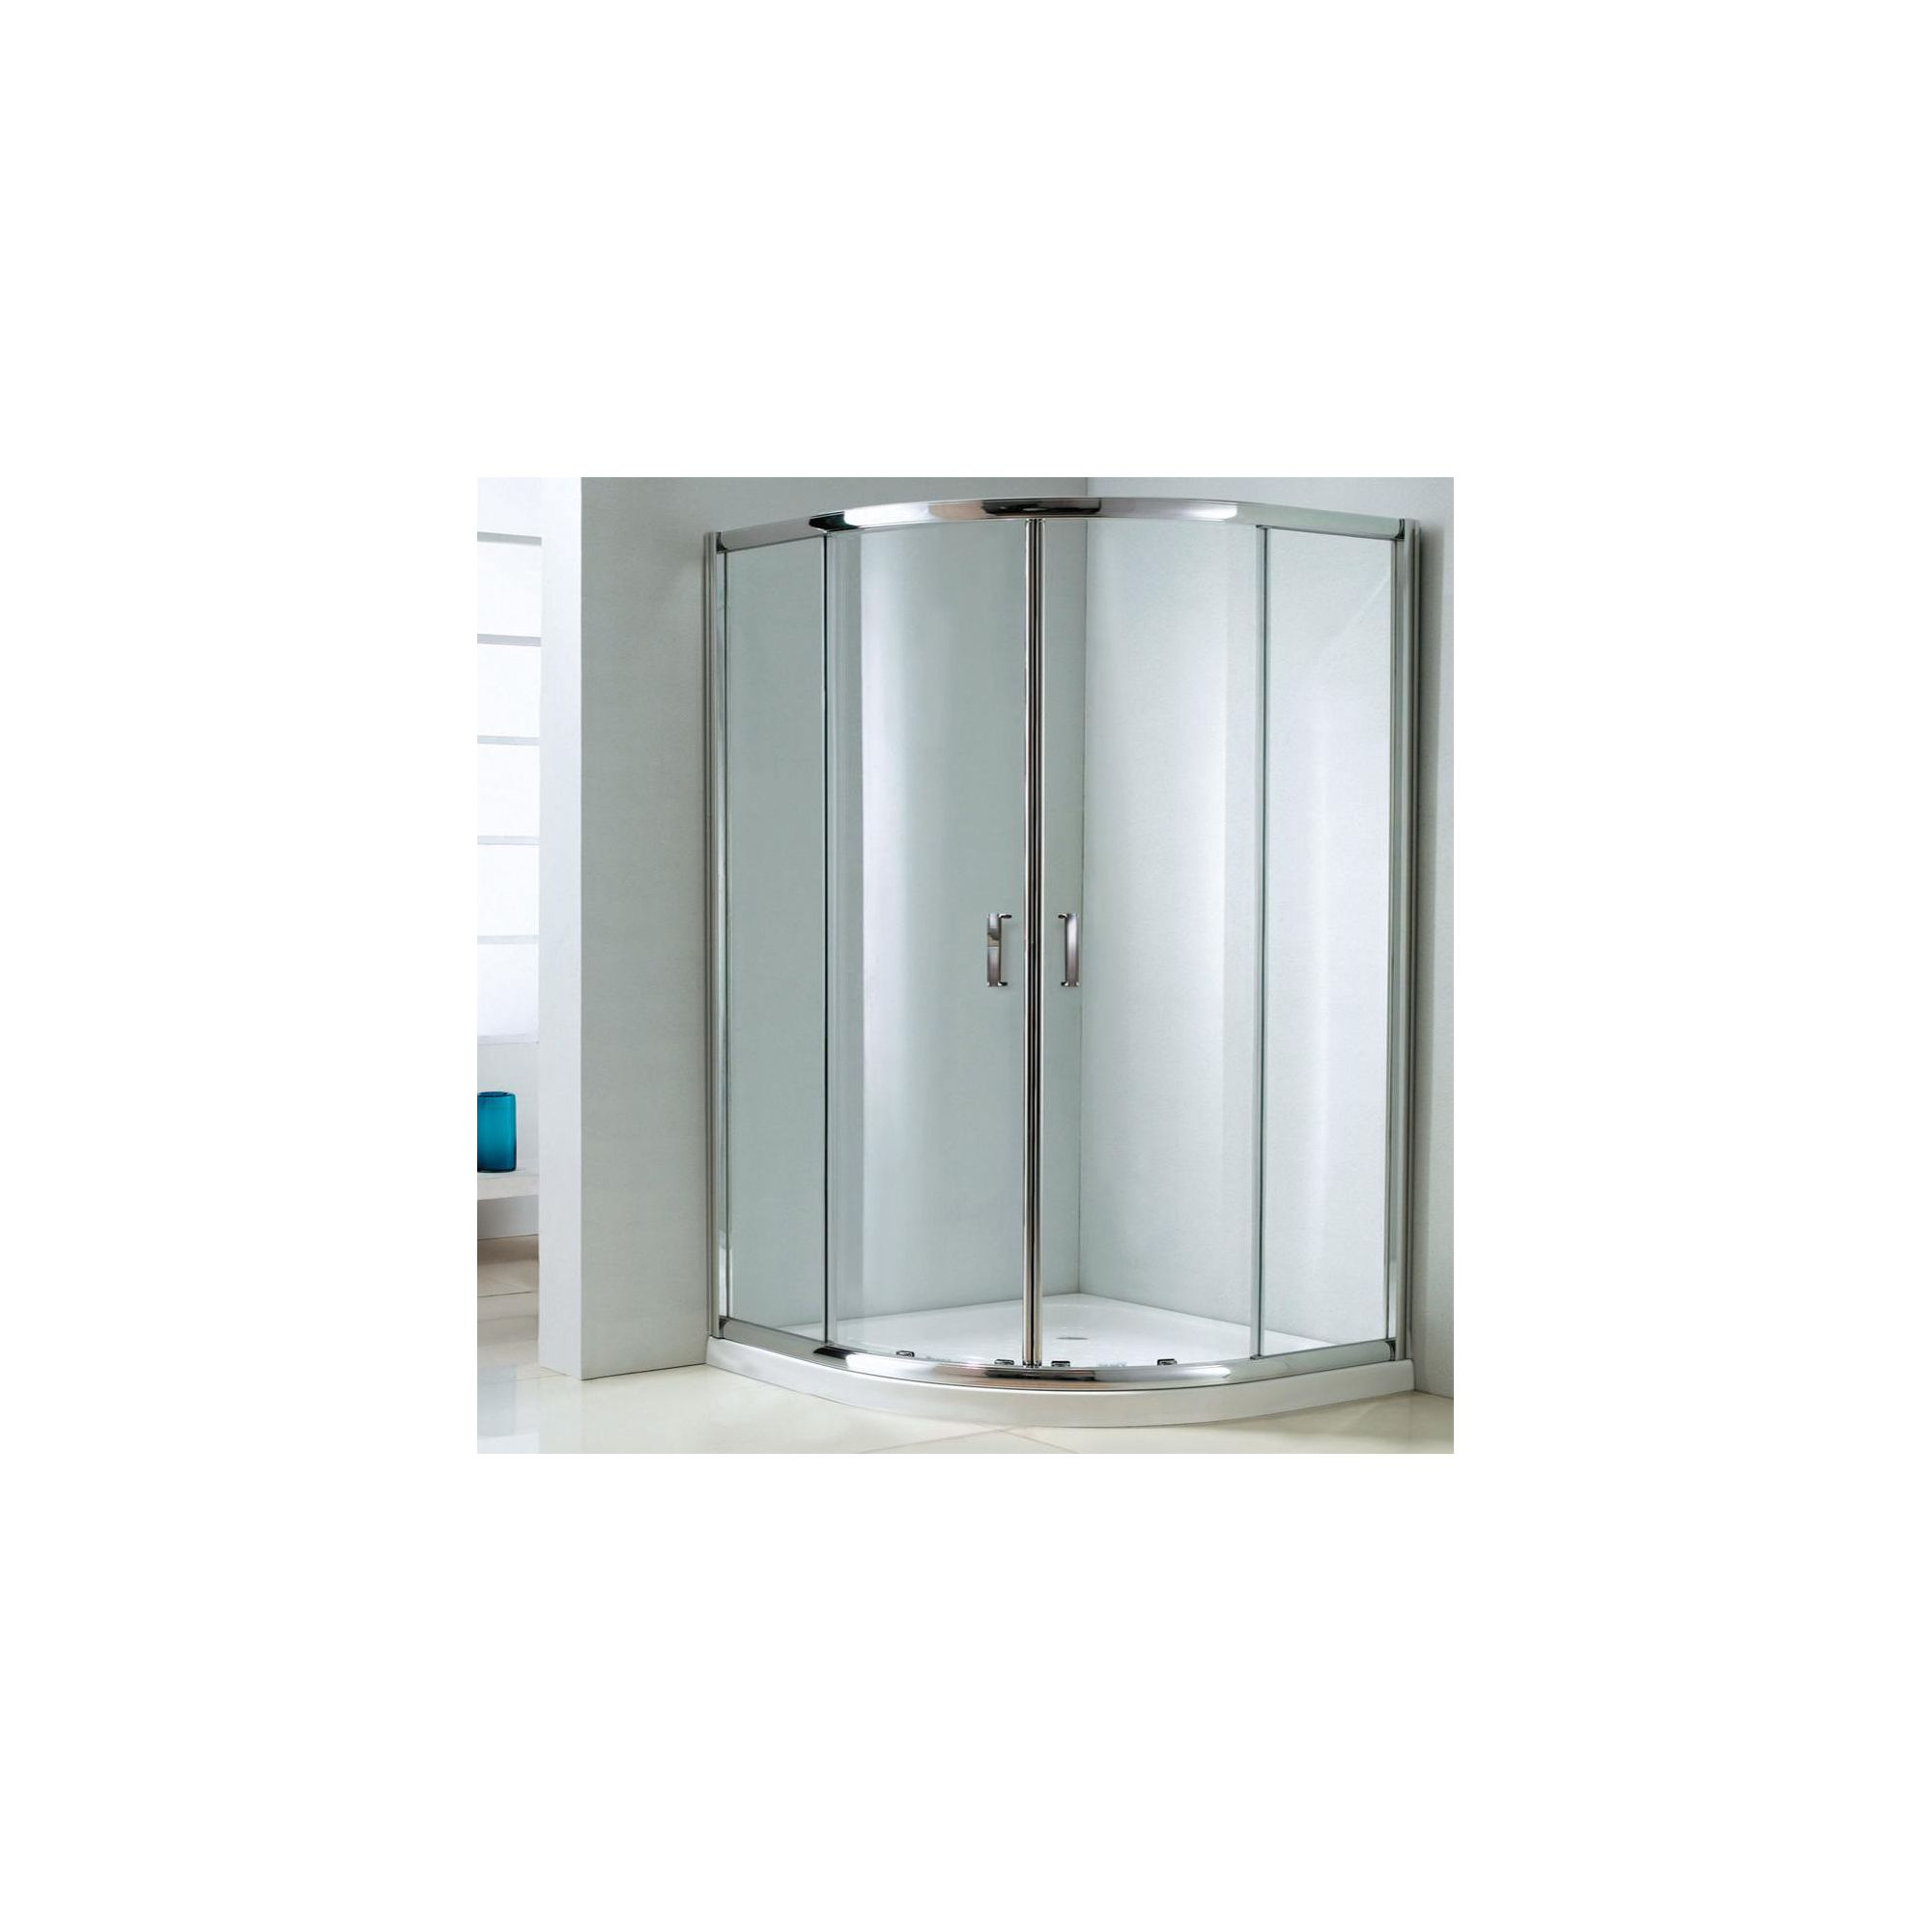 Duchy Style Double Offset Quadrant Door Shower Enclosure, 1200mm x 800mm, 6mm Glass, Low Profile Tray, Left Handed at Tesco Direct